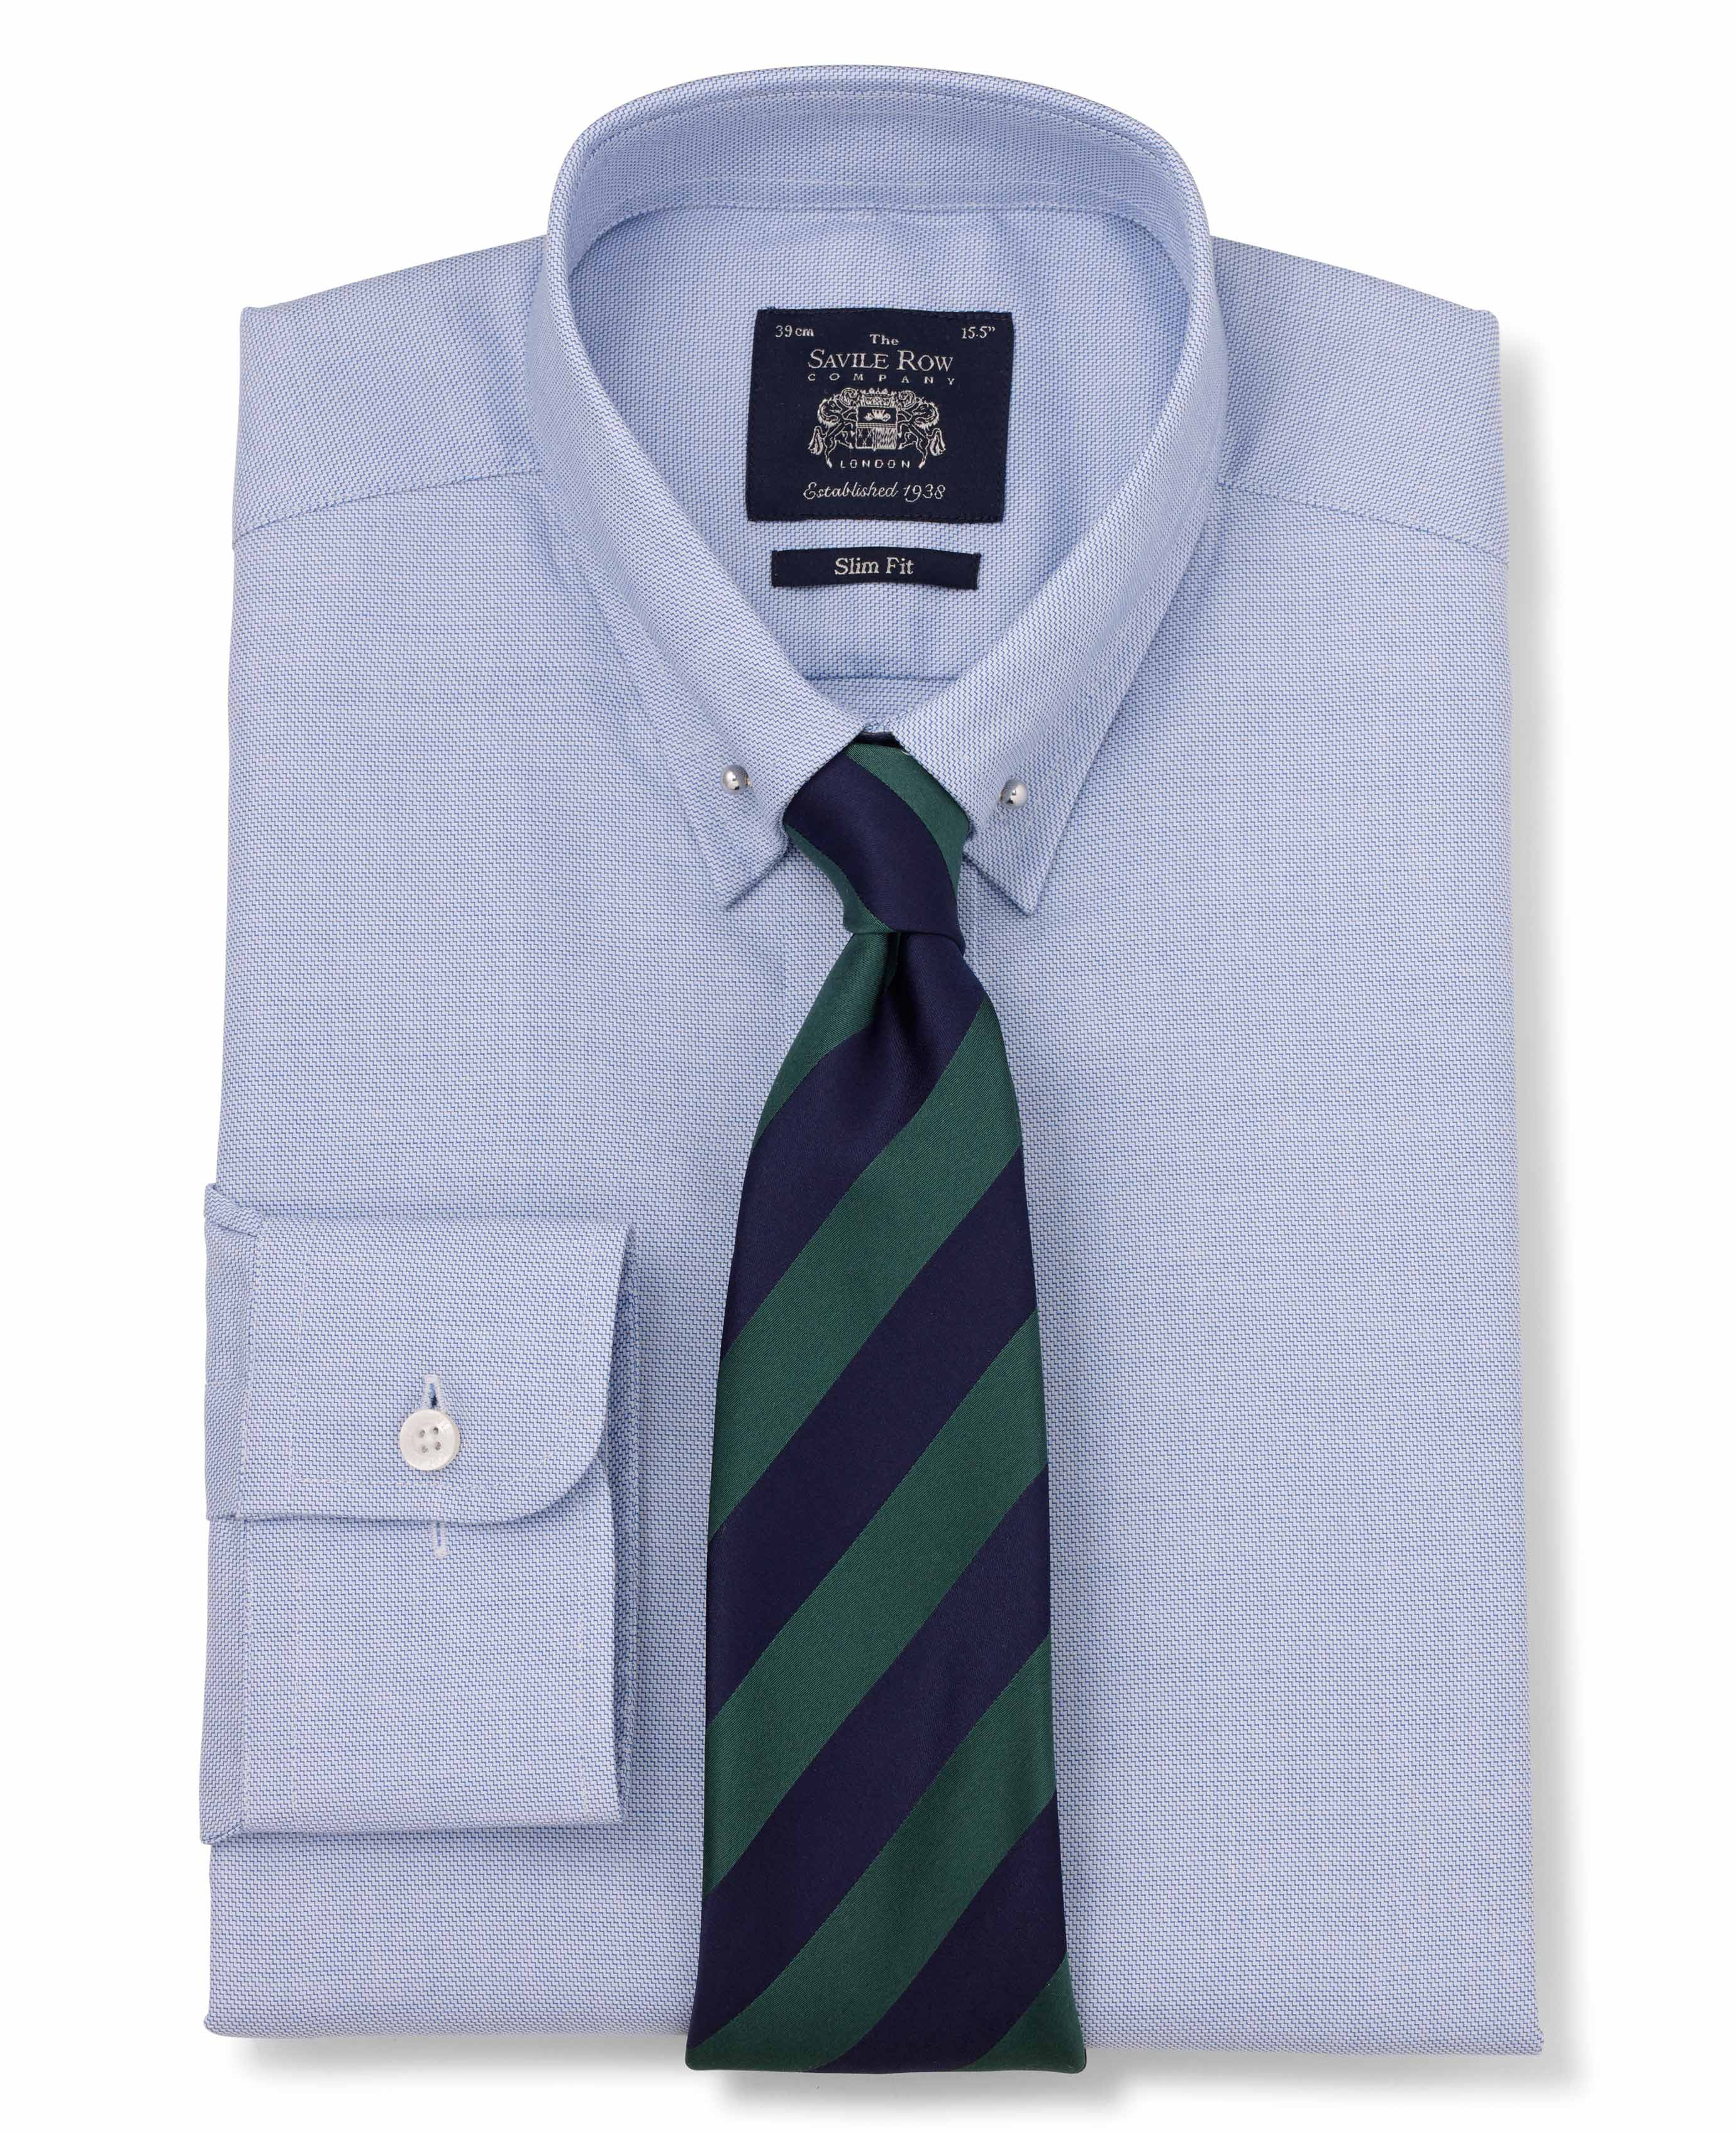 f38c9bf4 Men's blue textured slim fit pin collar shirt | Savile Row Company